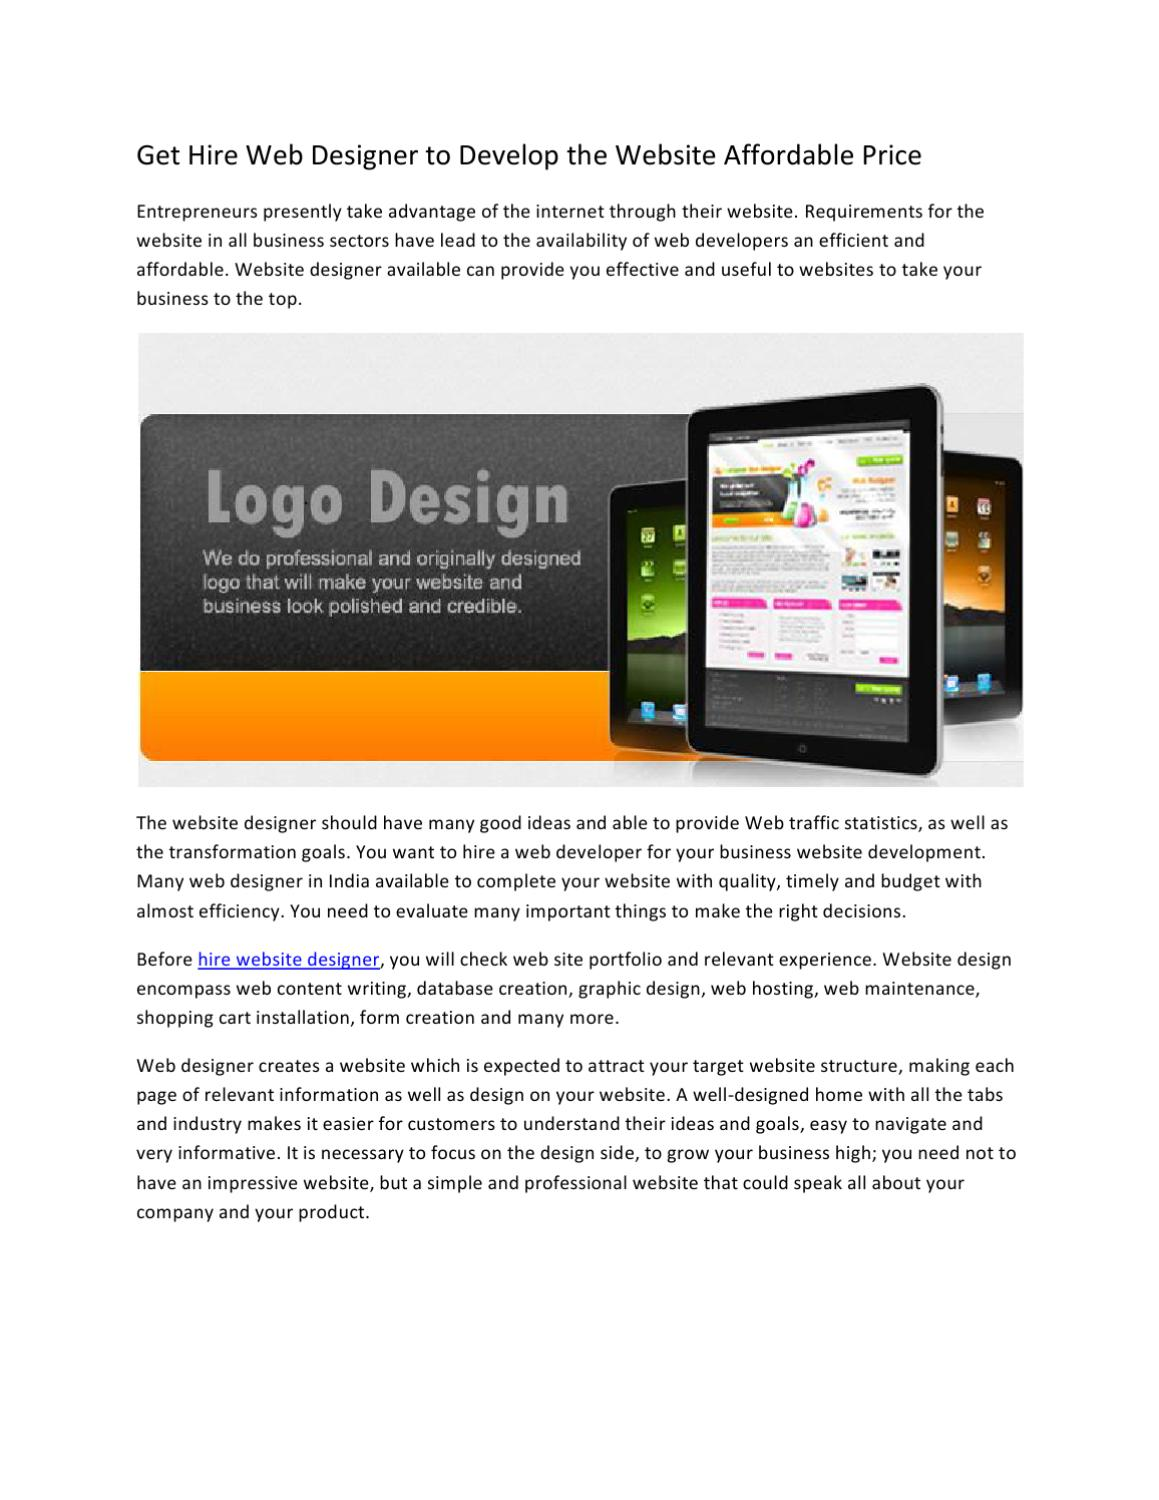 Get Hire Web Designer To Develop The Website Affordable Price By Eric Lewis Issuu